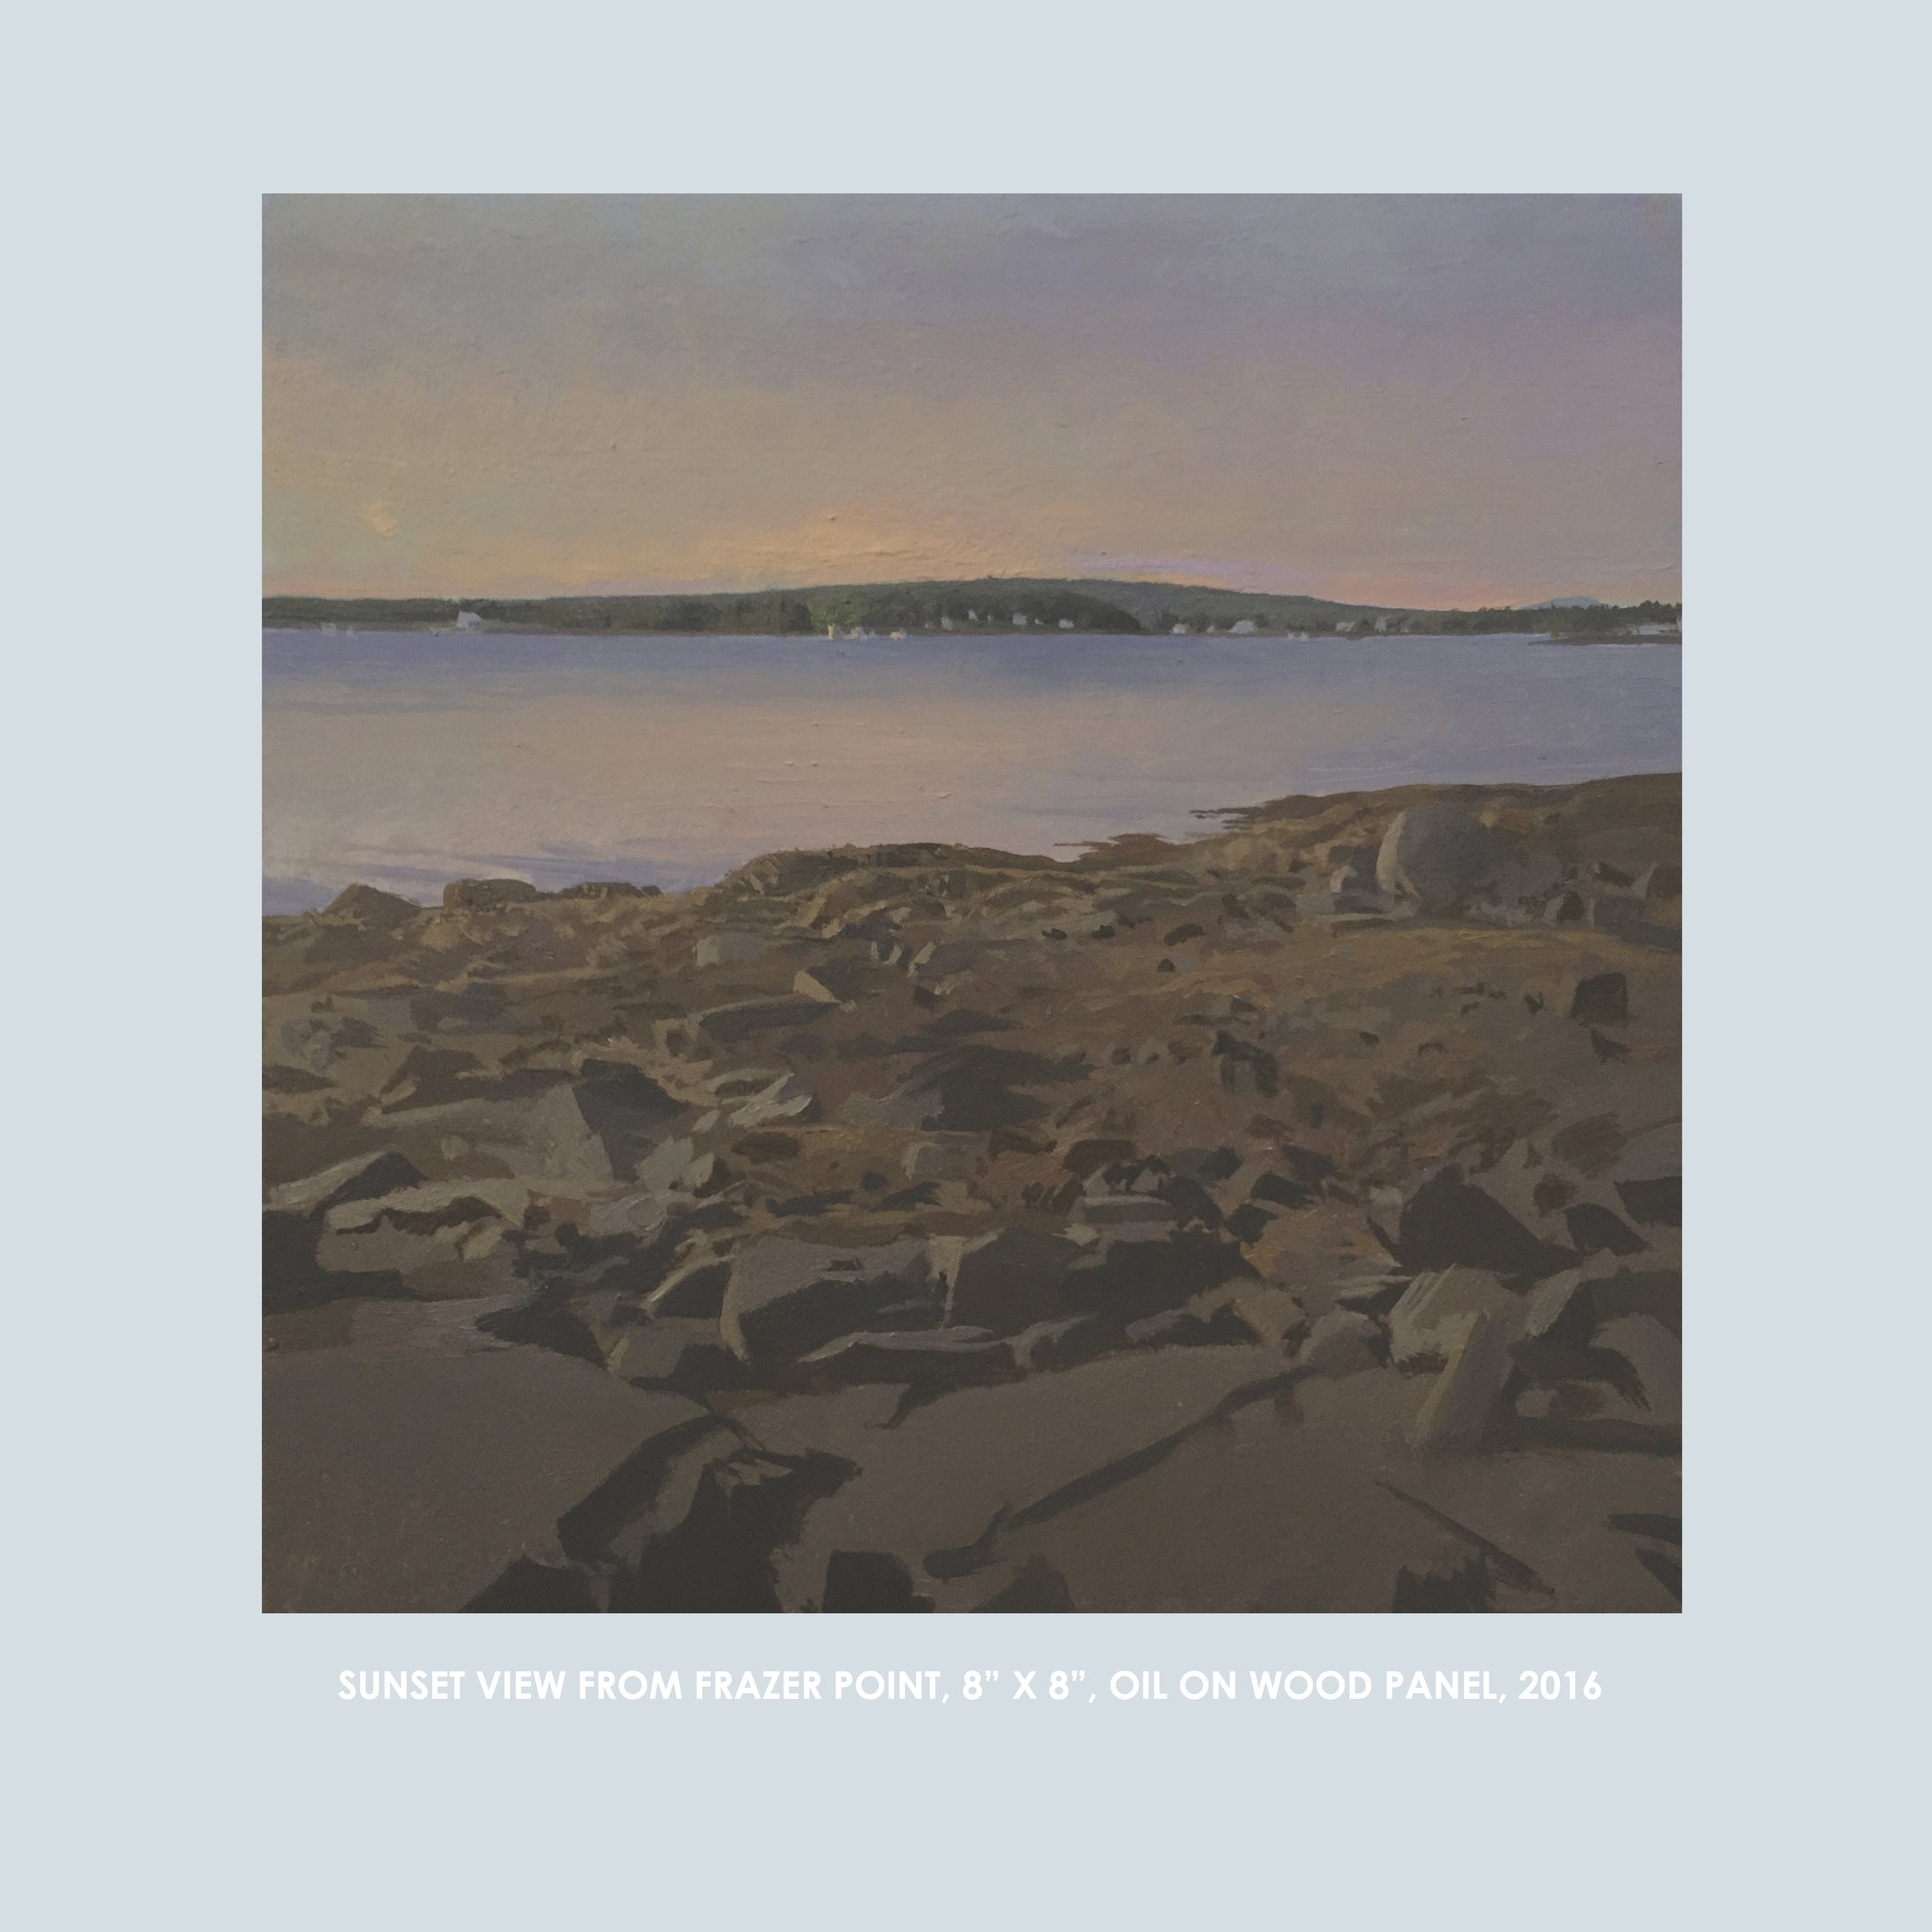 """Copy of Christopher S. Tietjen painting: SunsetView from Frazer Point, 8x8"""", Oil on Wood Panel, 2016"""